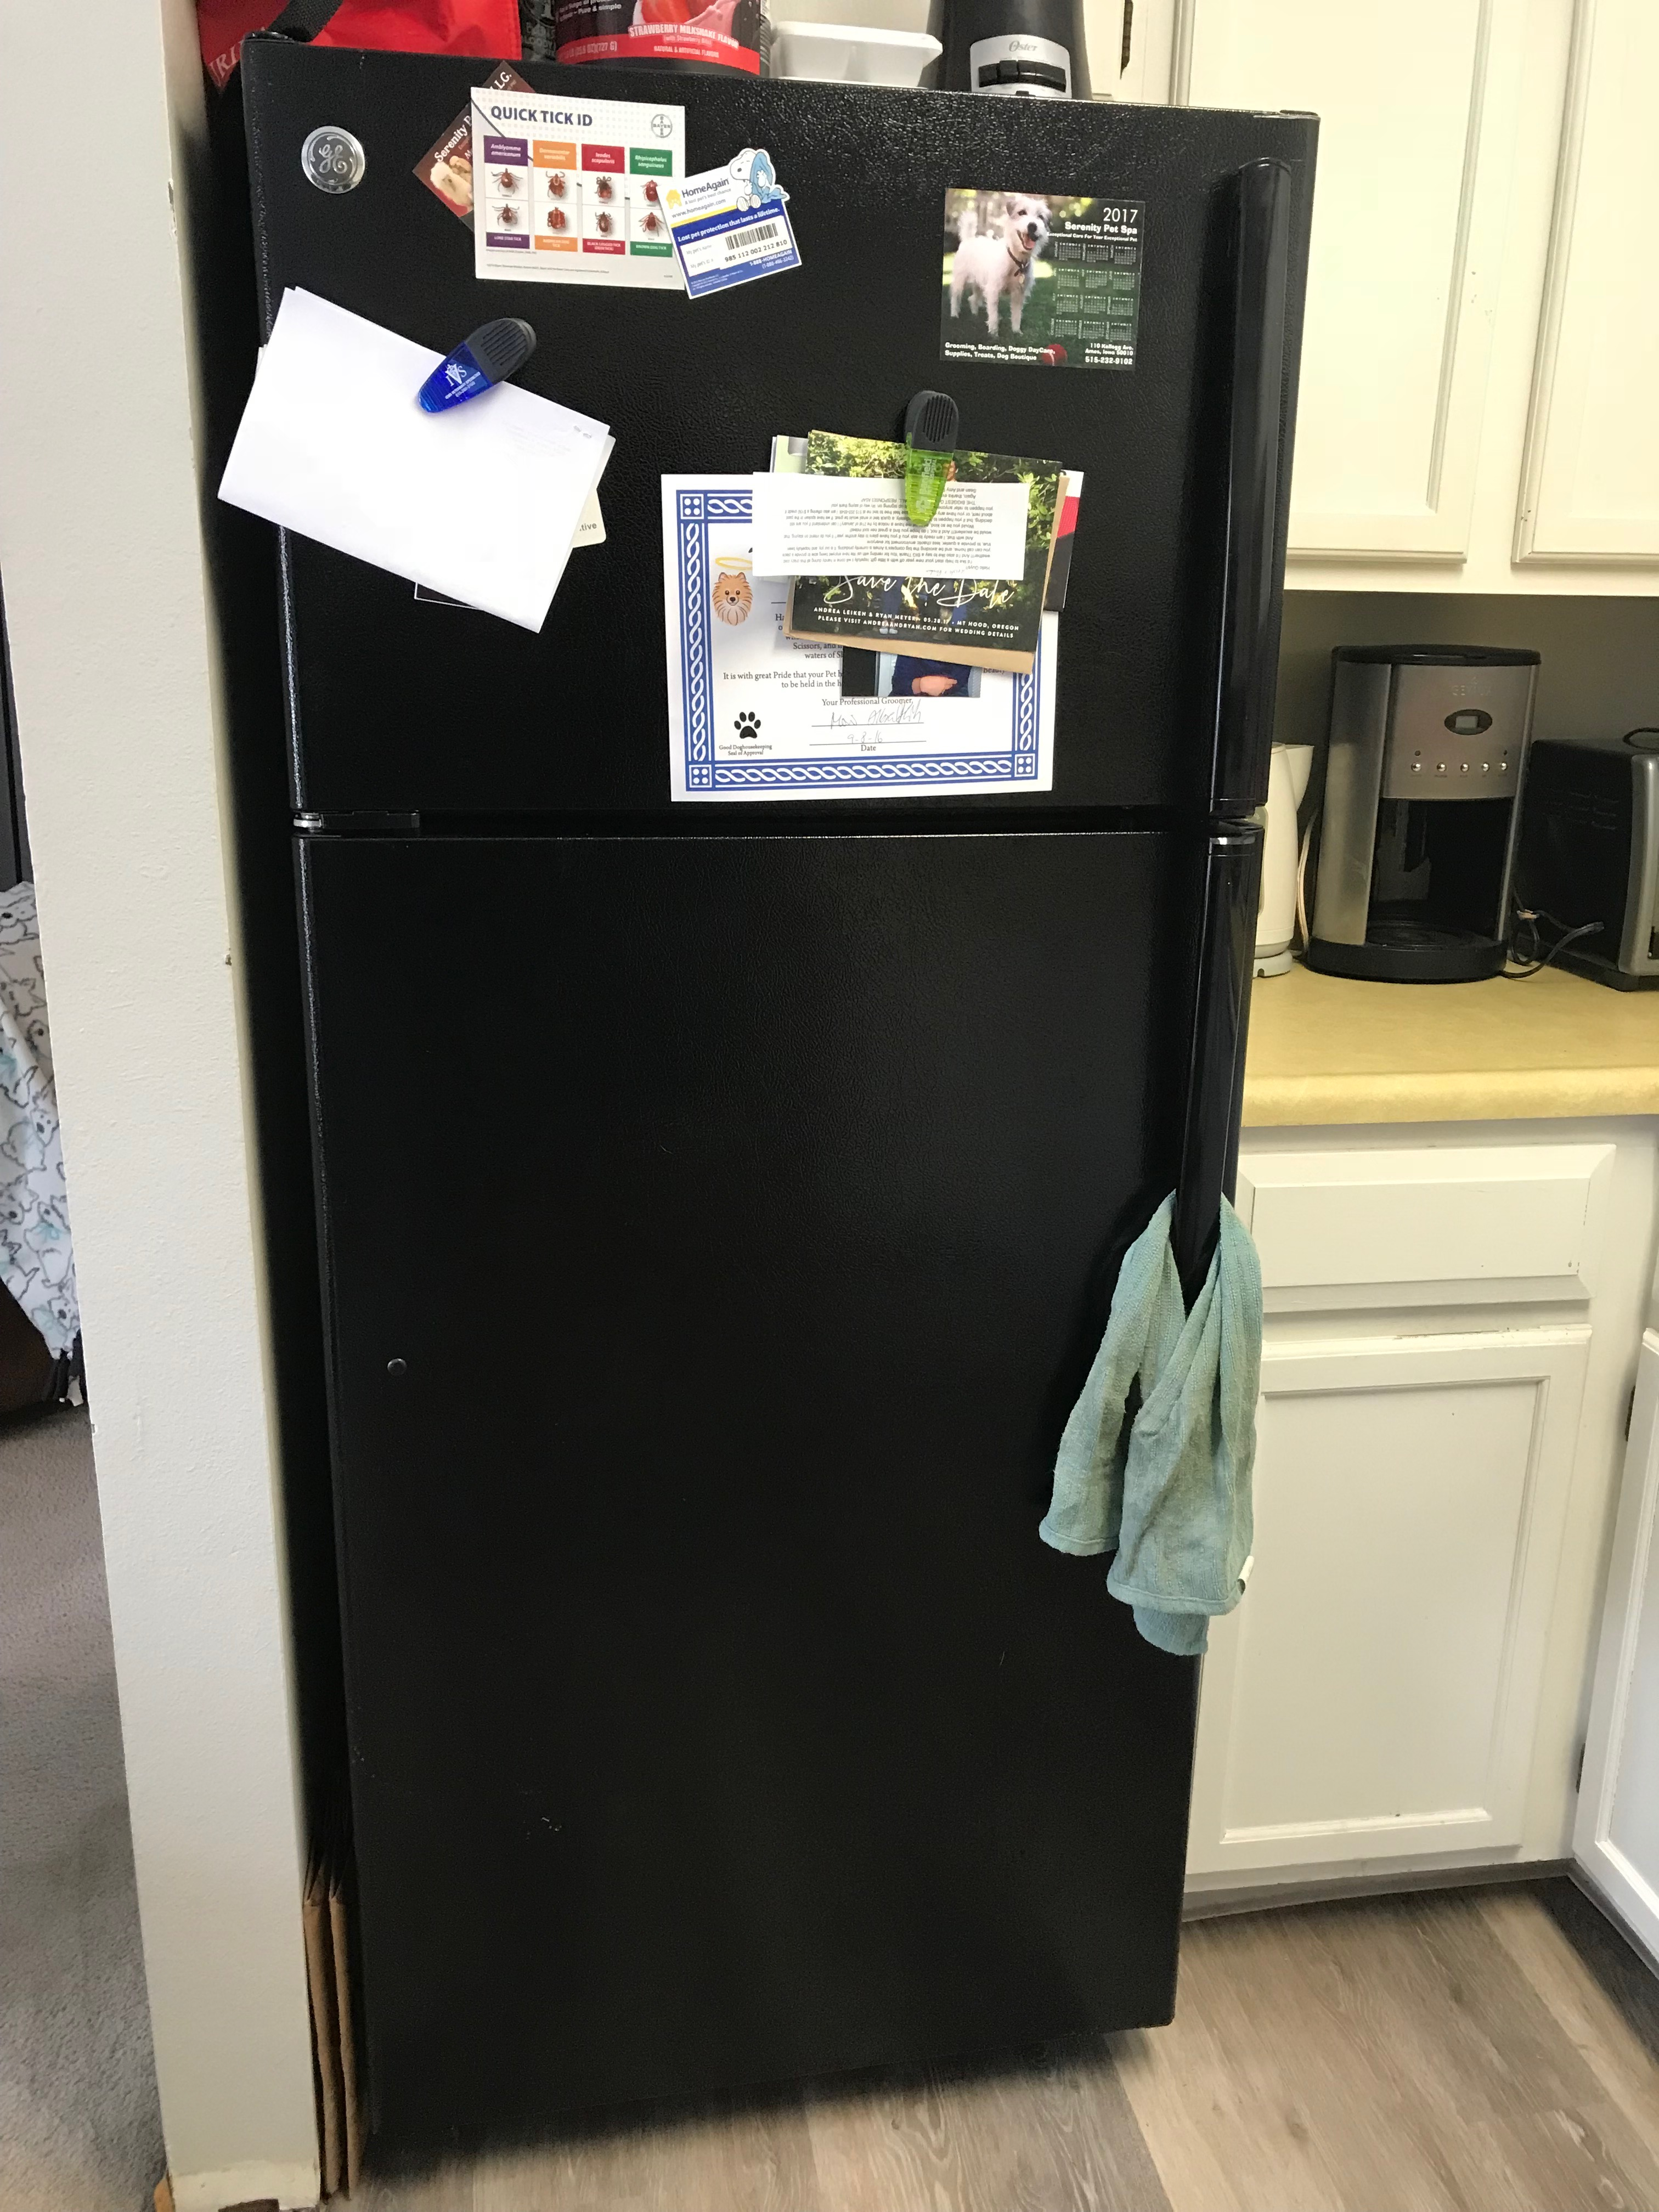 For Rent Or Sublease Iowa State University